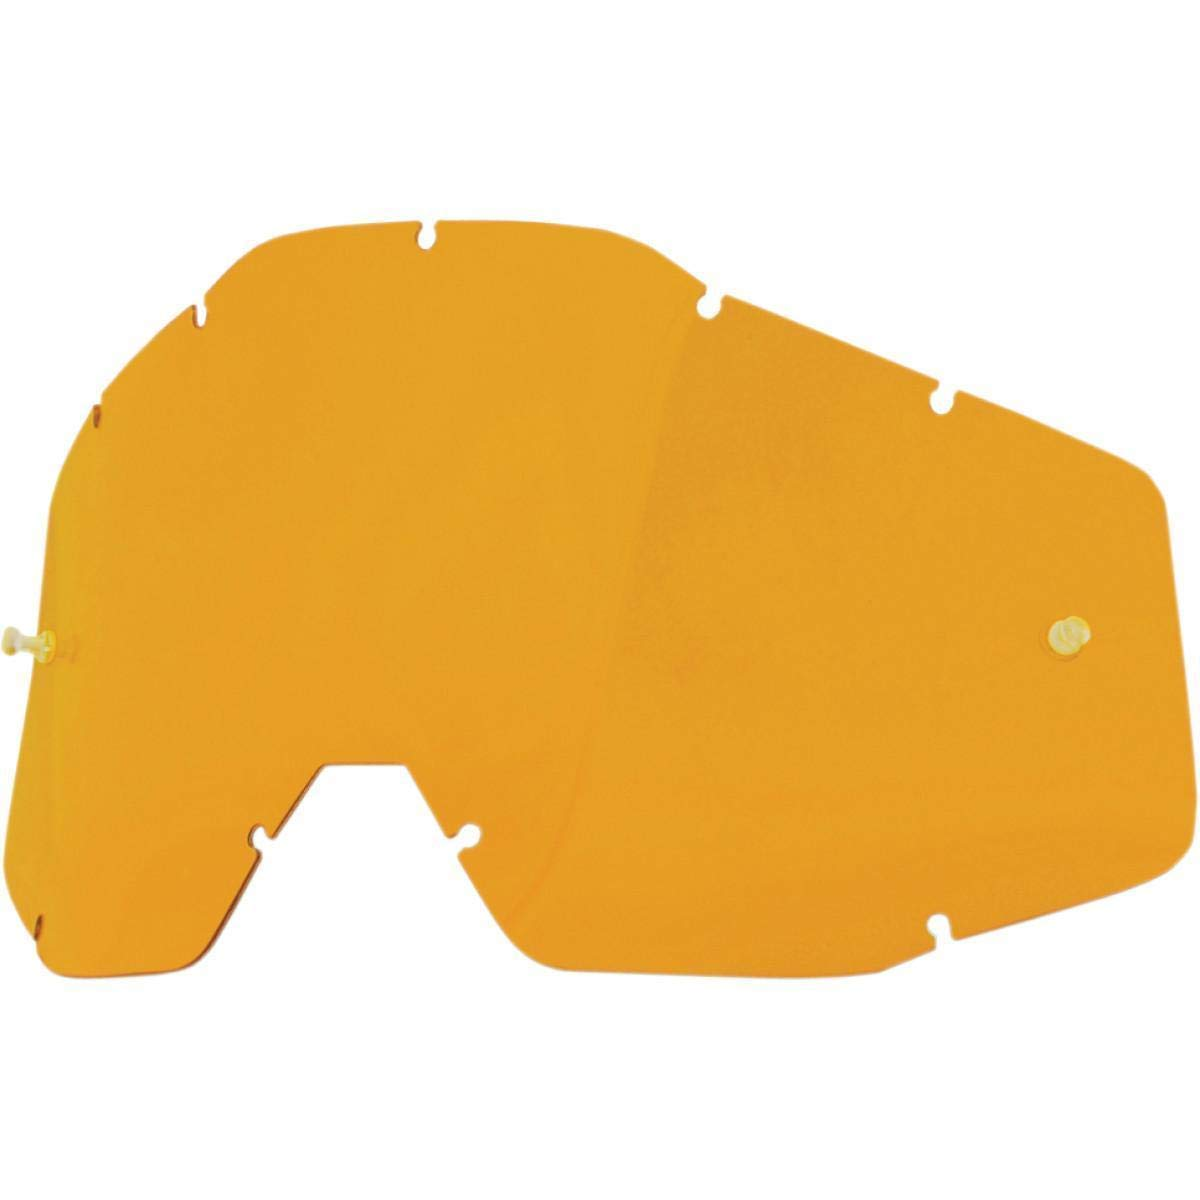 MX Goggle Lens 100 Percent Racecraft-Accuri-Strata Persimmon Anti-Fog (Default, Giallo) Sconosciuto 51001-046-02